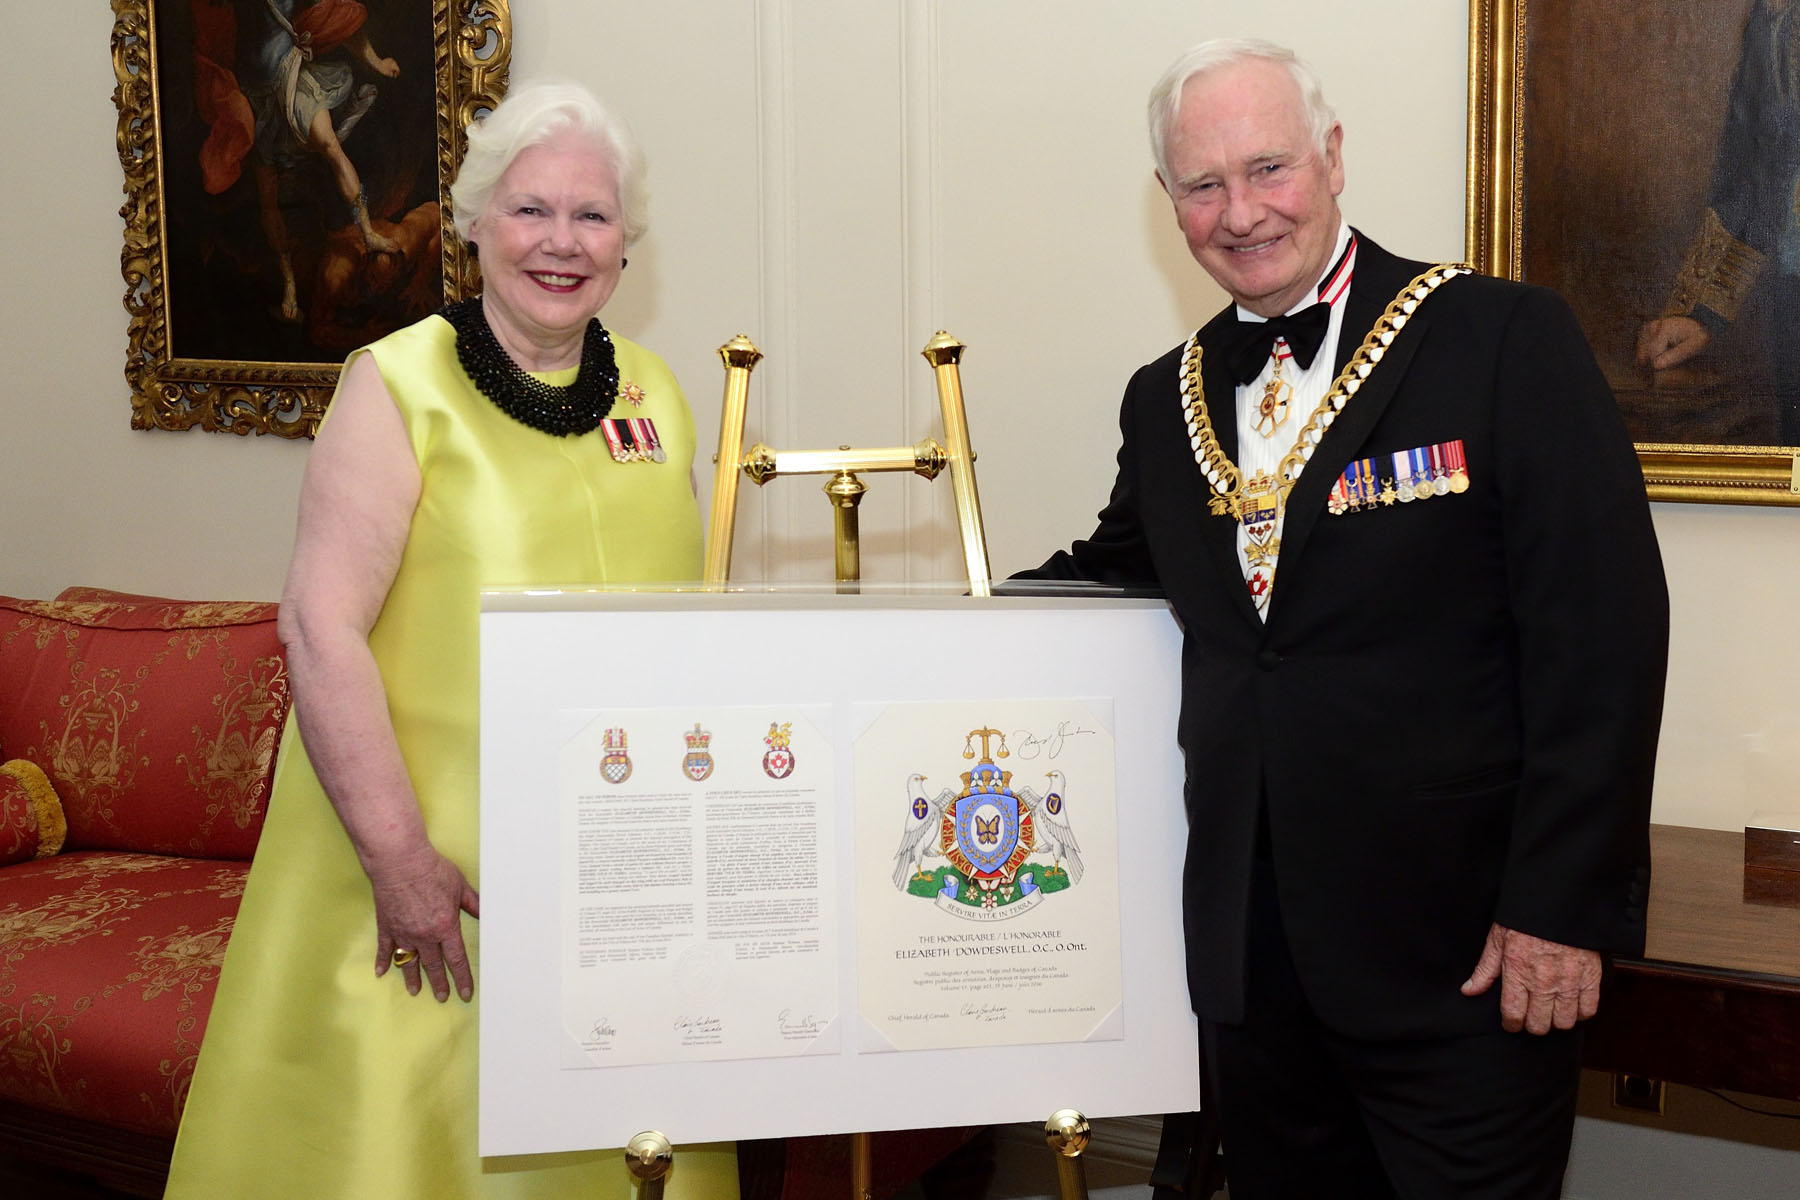 Her Honour the Honourable Elizabeth Dowdeswell, Lieutenant Governor of Ontario, was also presented with her new coat of arms.